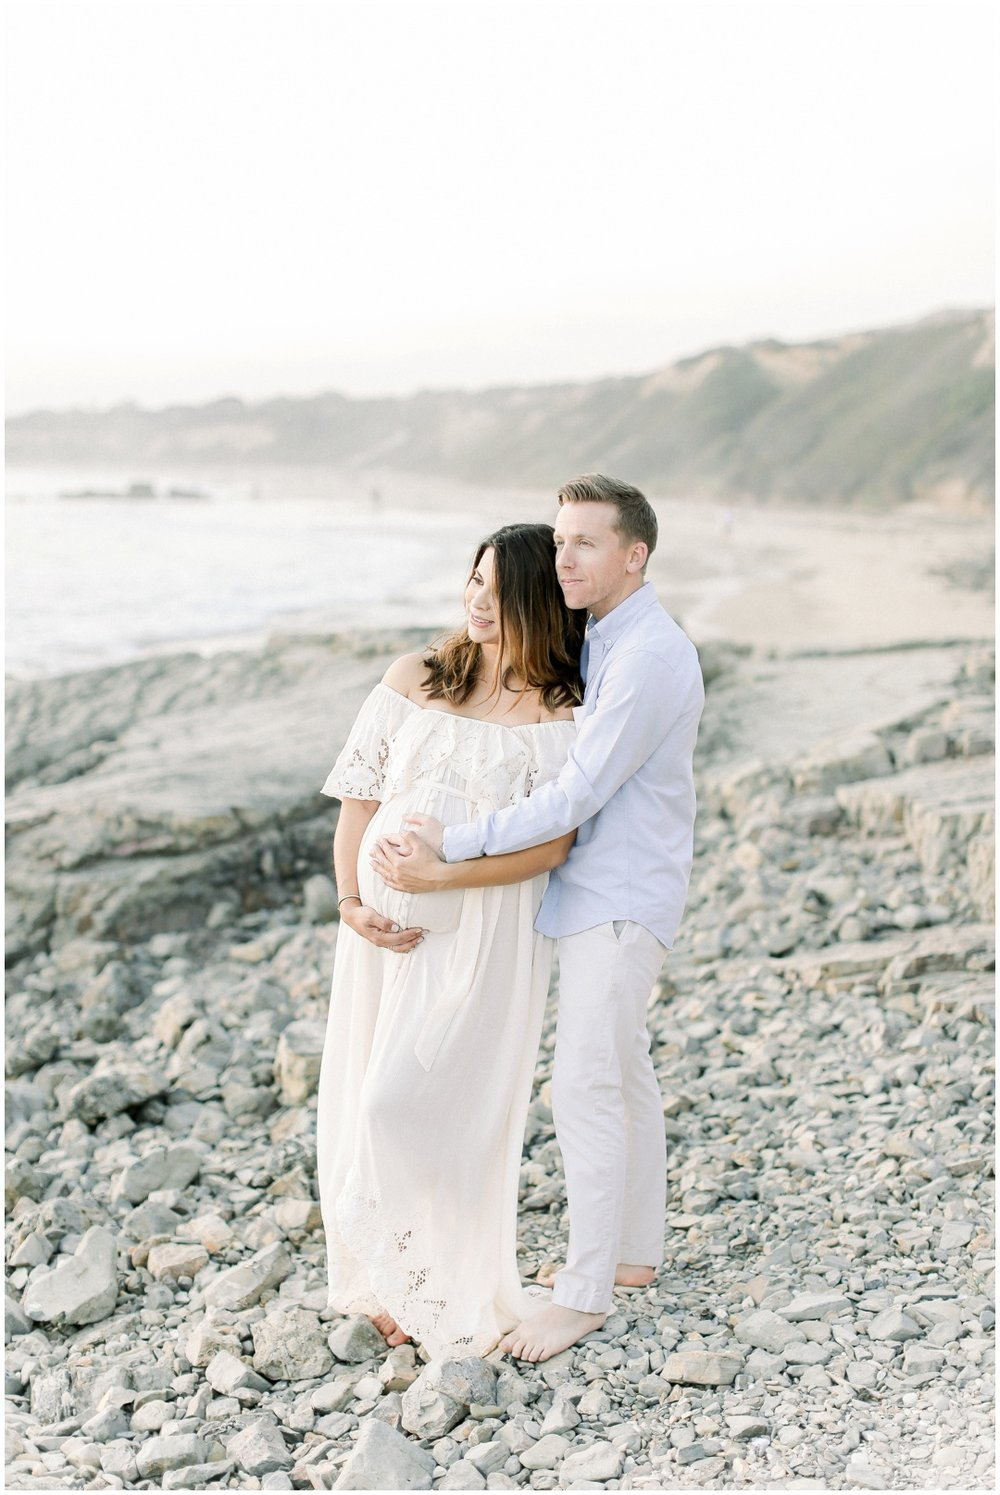 Orange_County_Maternity_Photographer_Newport_Beach_Family_Photographer_Newport_Beach_Newborn_Photographer_Orange_County_Family_Photographer_Cori_Kleckner_Photography_Huntington_Beach_Photographer_Nicole_Gire_Brandon_Gire__2558.jpg